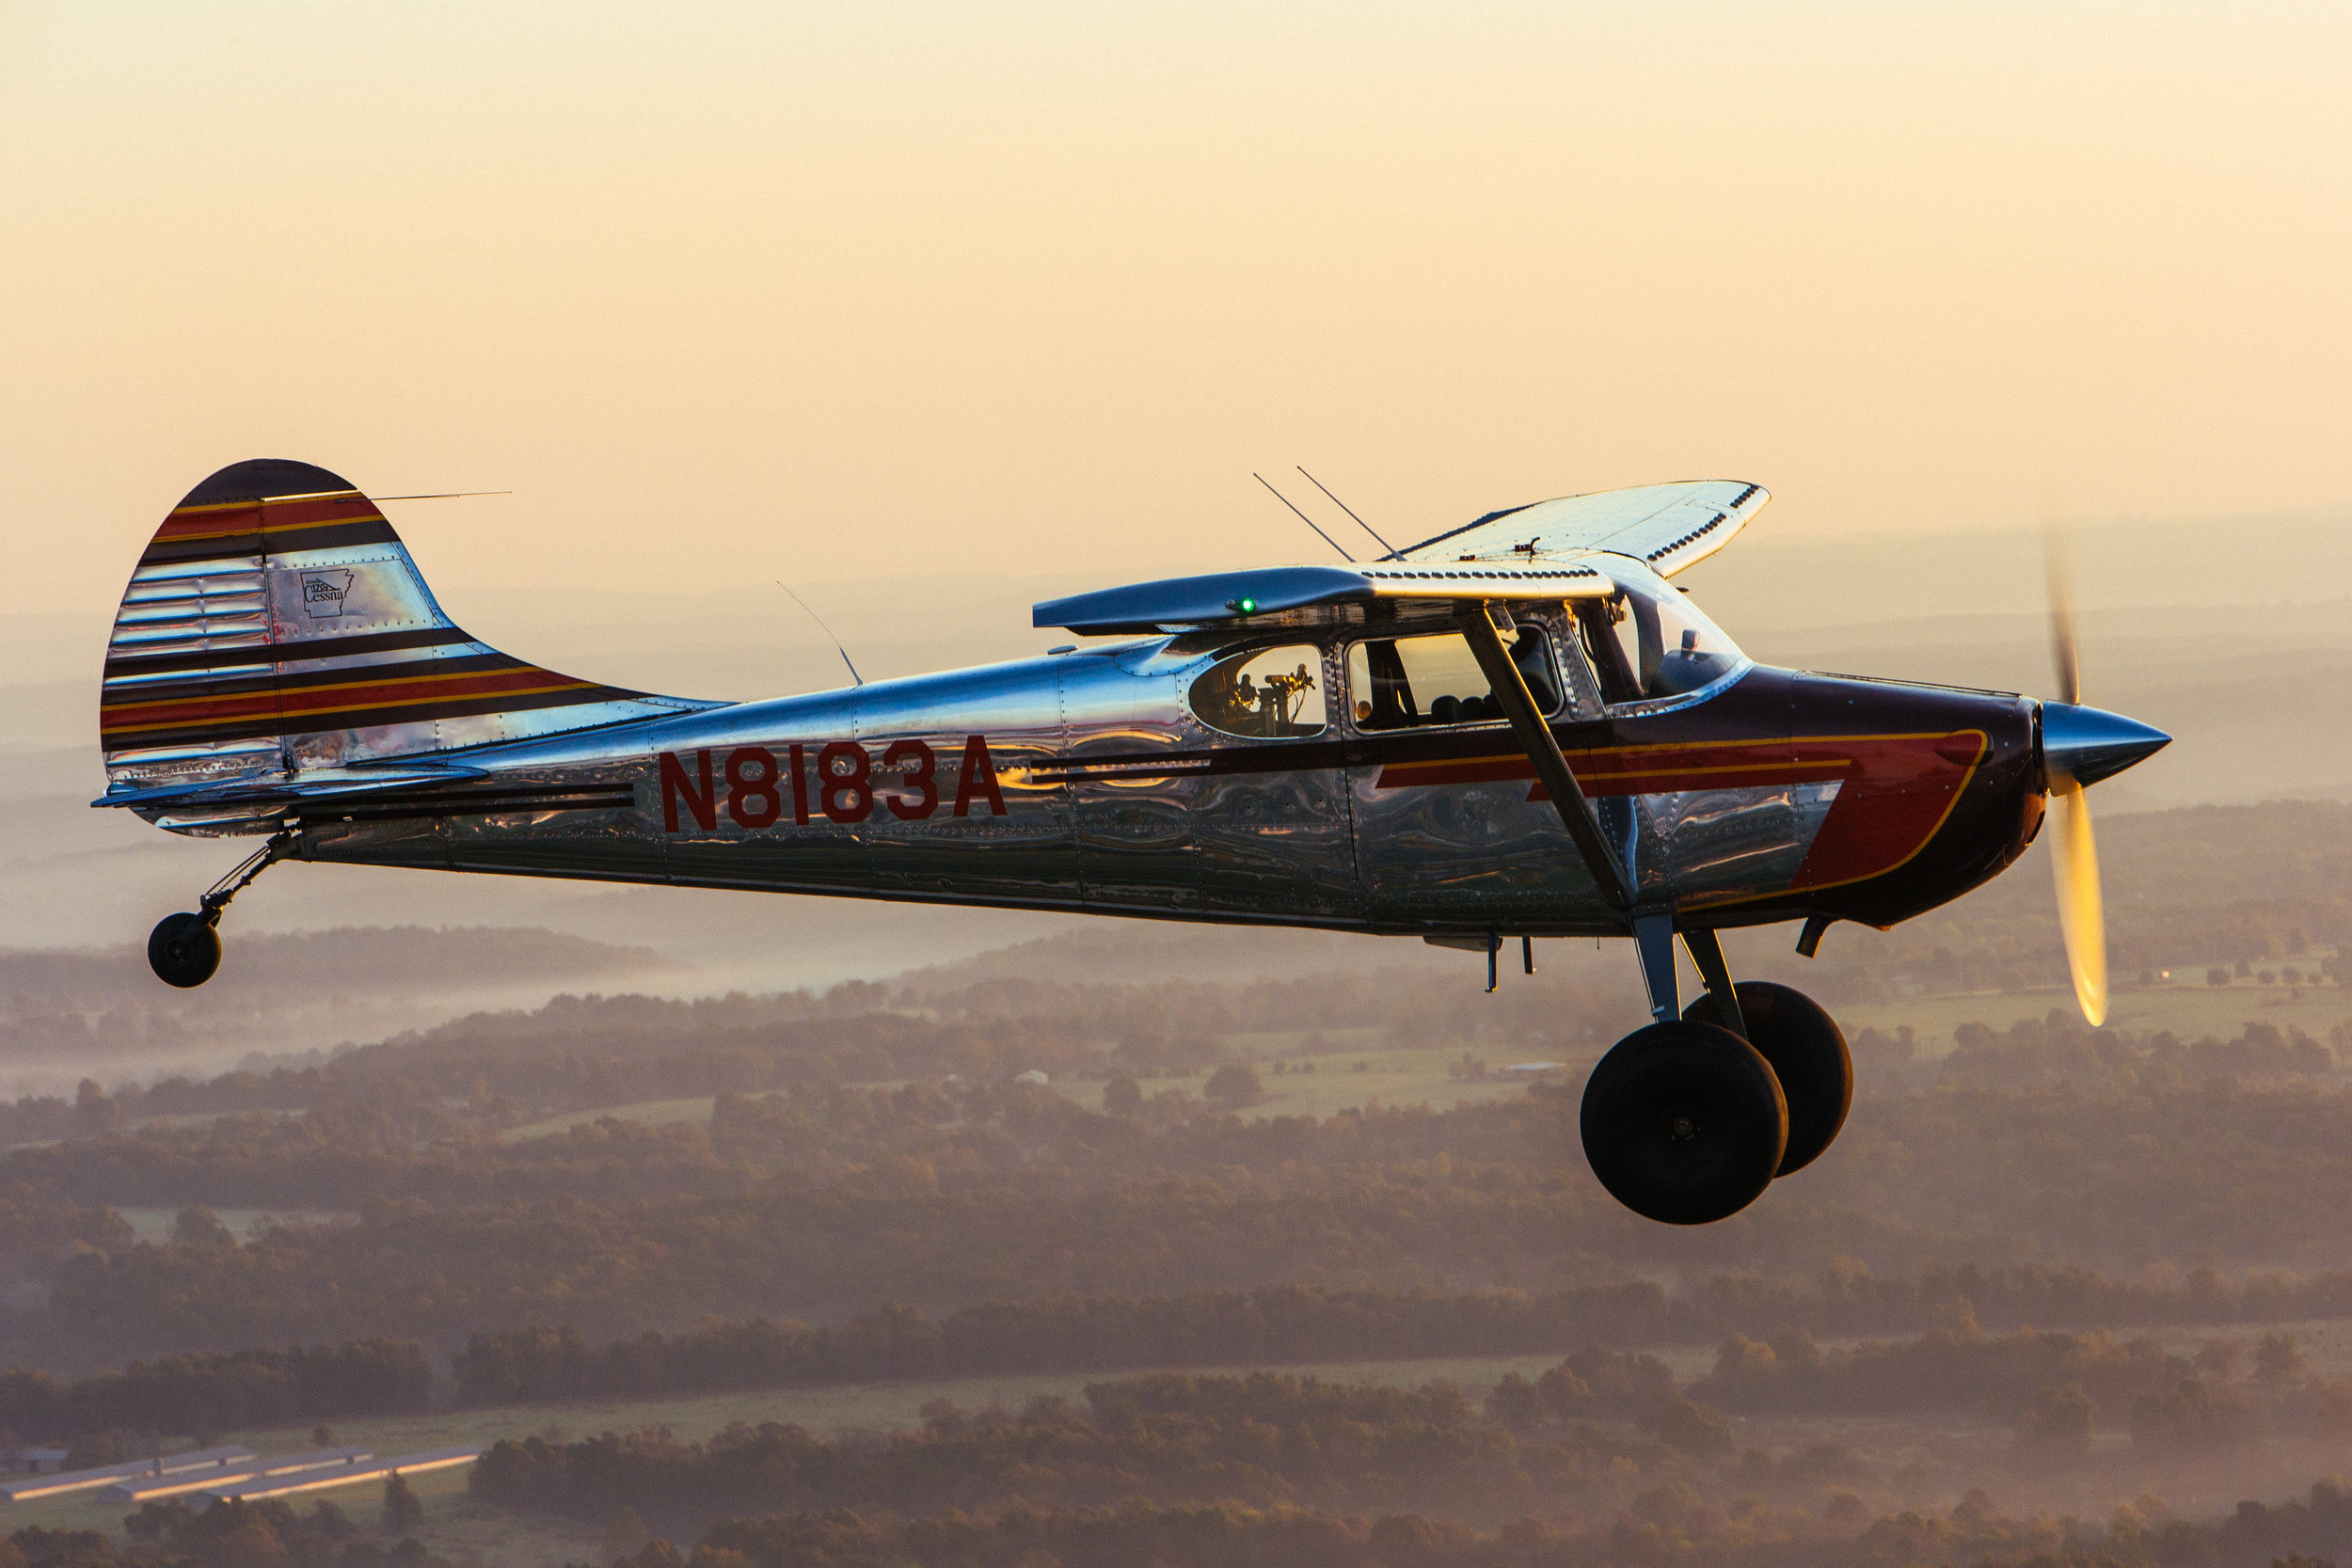 Carl_Zoch_SummitAviation_0203.jpg